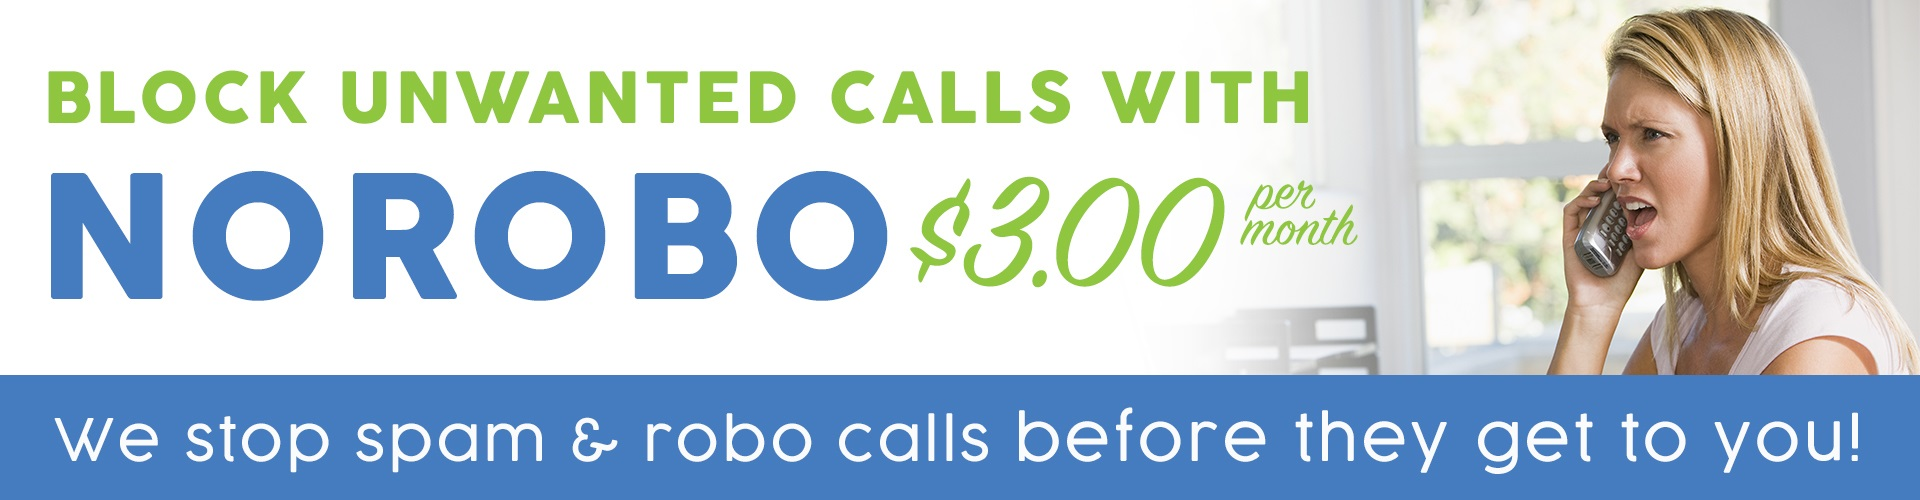 No Robocalls